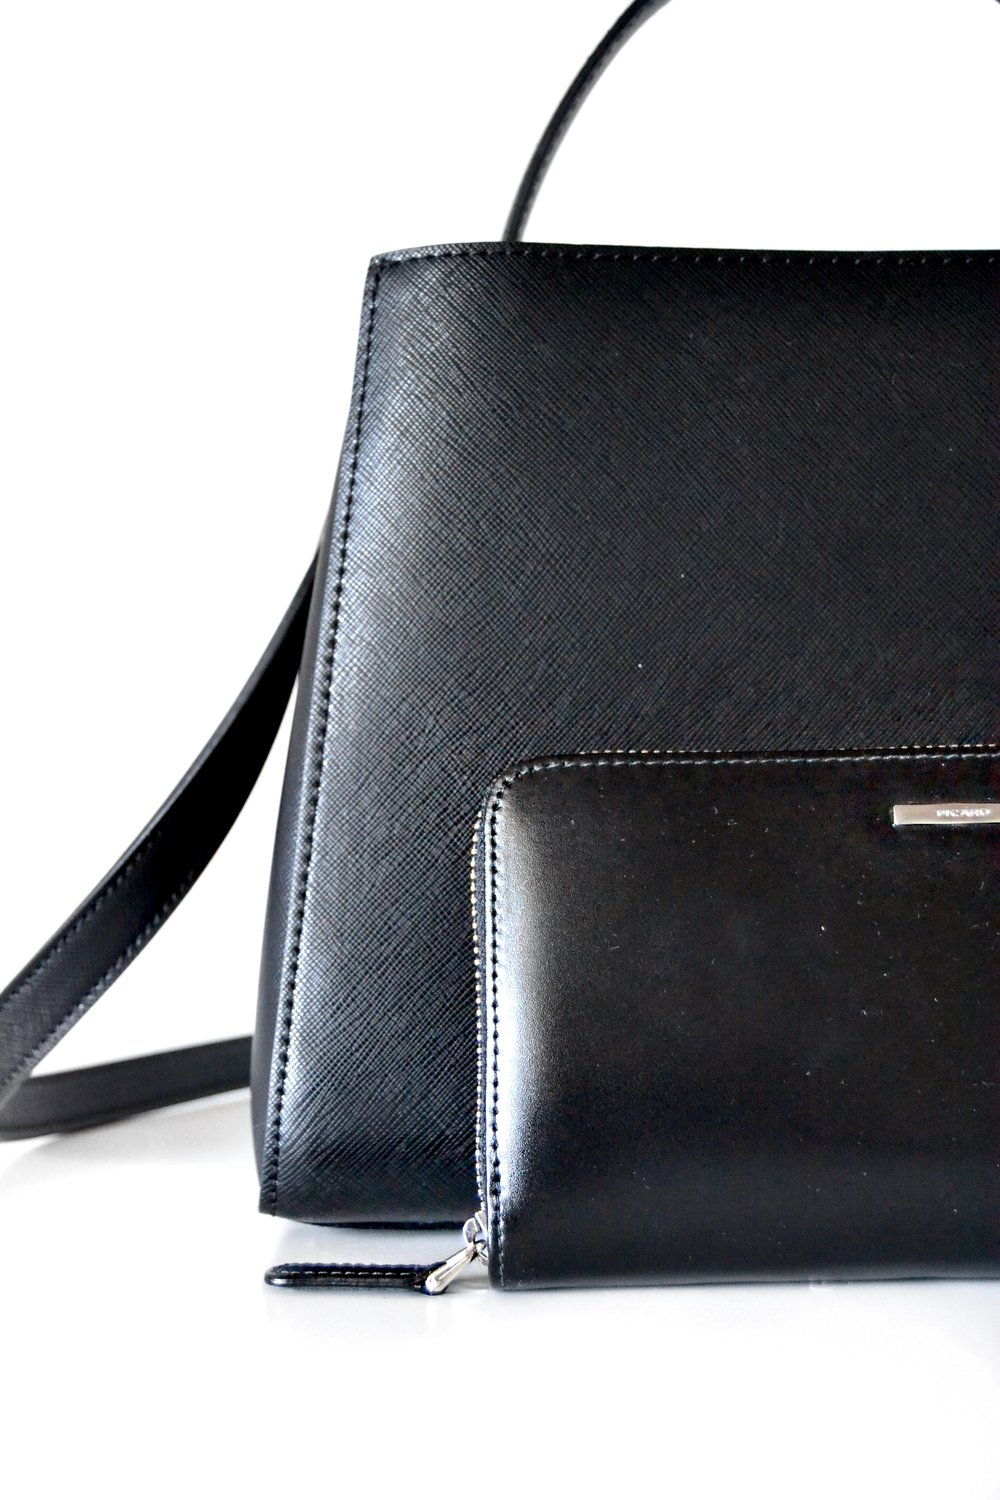 Wallet & Purse - I always like to have a kind of matching purse to my wallet, when it comes to color. Even though it makes it harder to find the wallet sometimes, it's just one of the things that make me happy and satisfied.